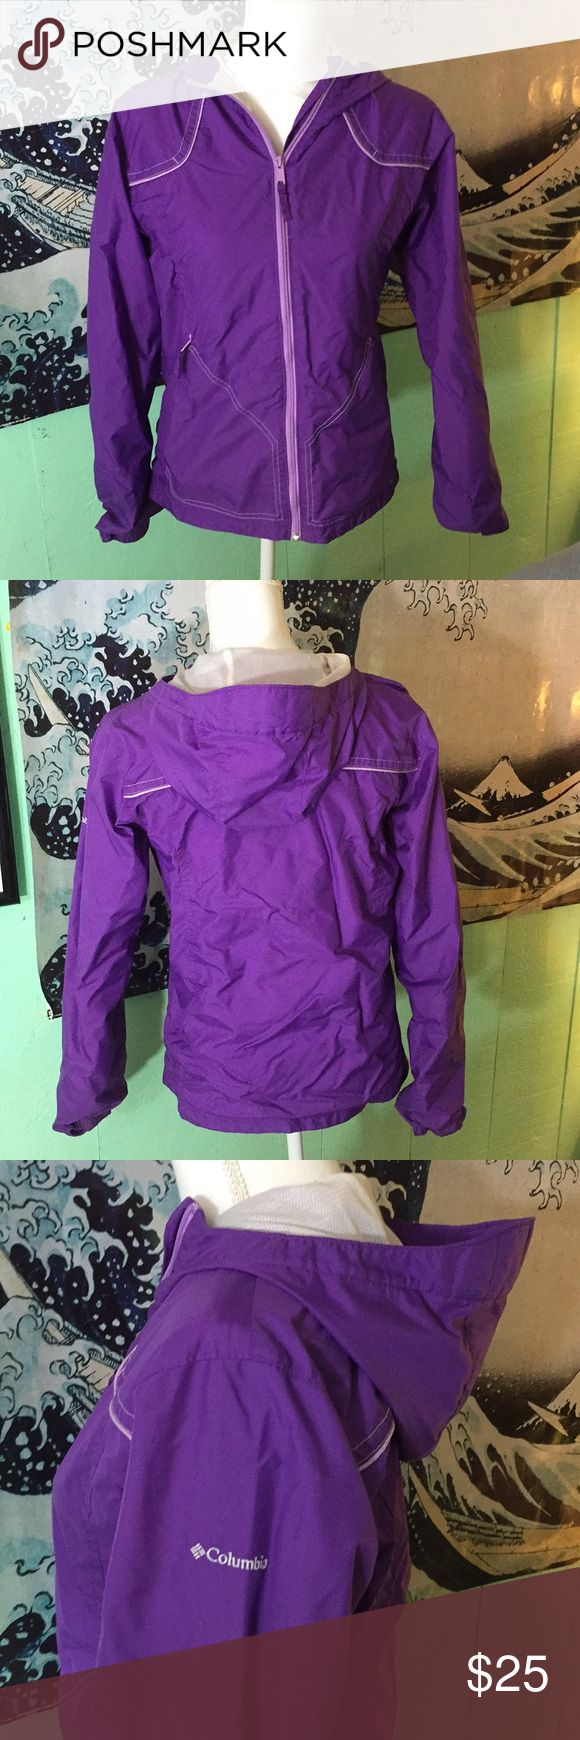 COLUMBIA PURPLE RAIN JACKET. Very clean. Excellent condition. Vibrant color purple! Size 18/20 girls . Fits a women's medium or small . Netting inside for added comfort and dryness. Hooded with two exterior pockets. Columbia Jackets & Coats